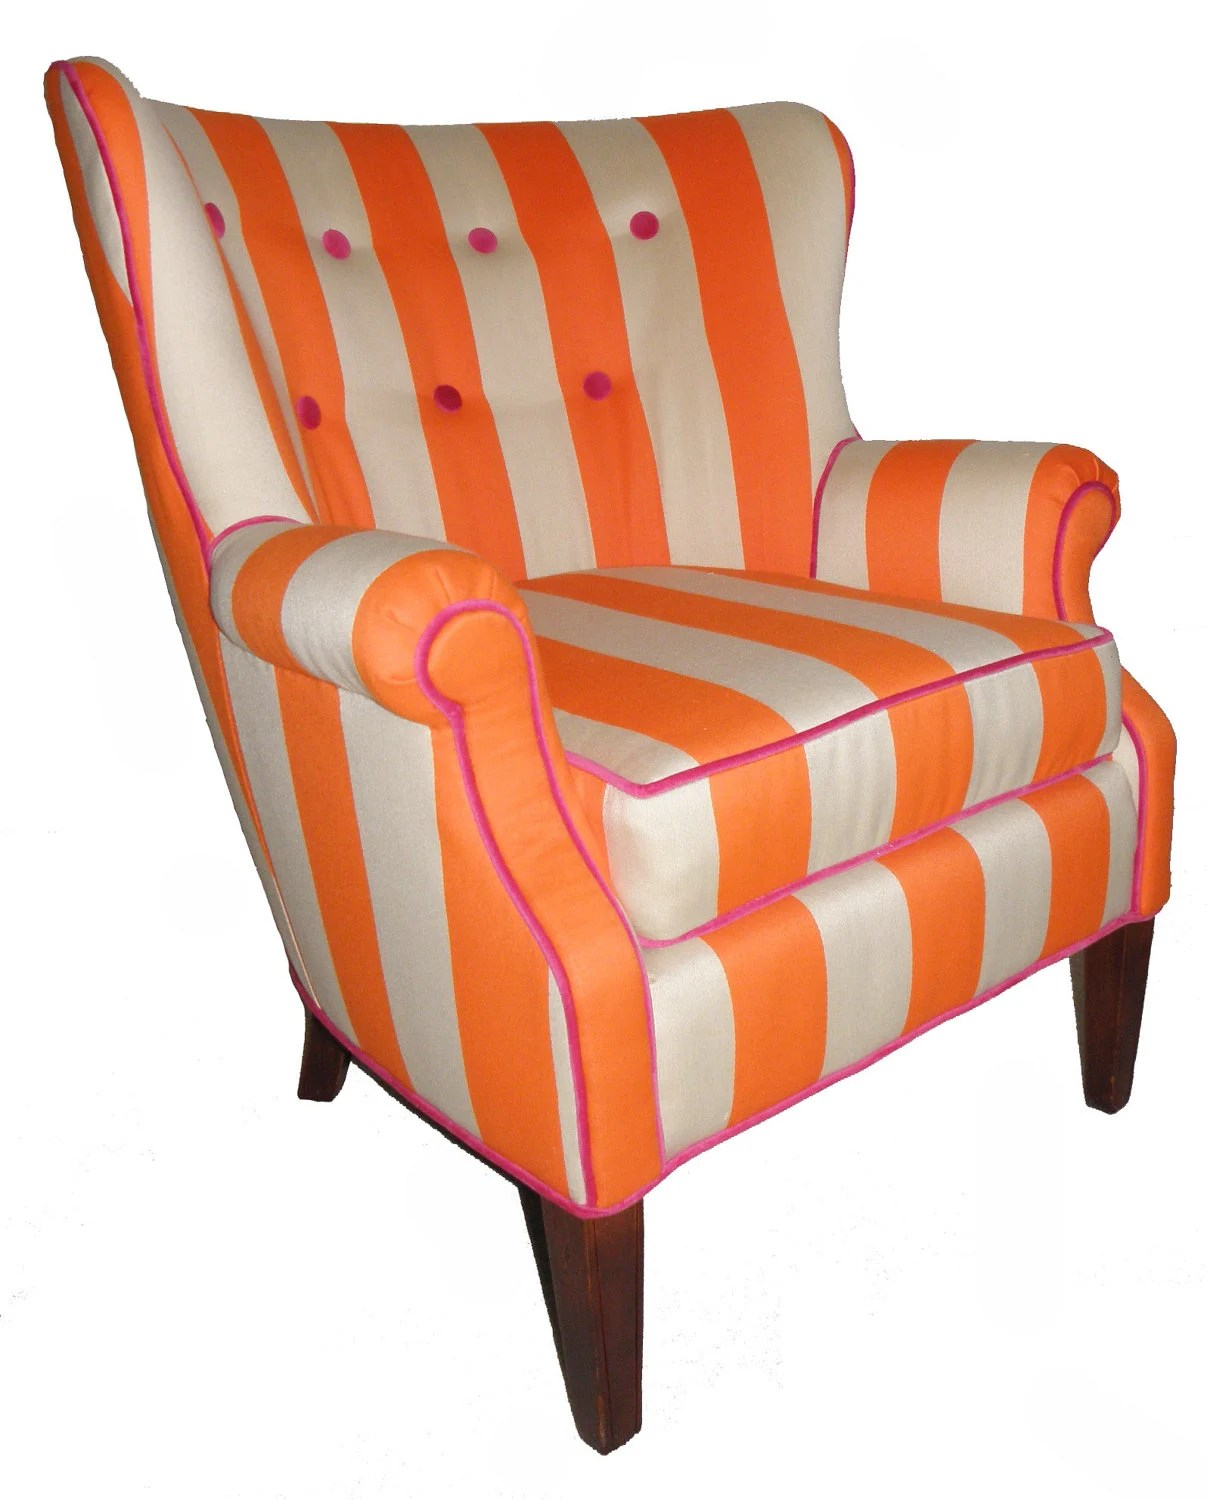 Orange Wingback Chair Vintage Orange Striped Wingback Chair